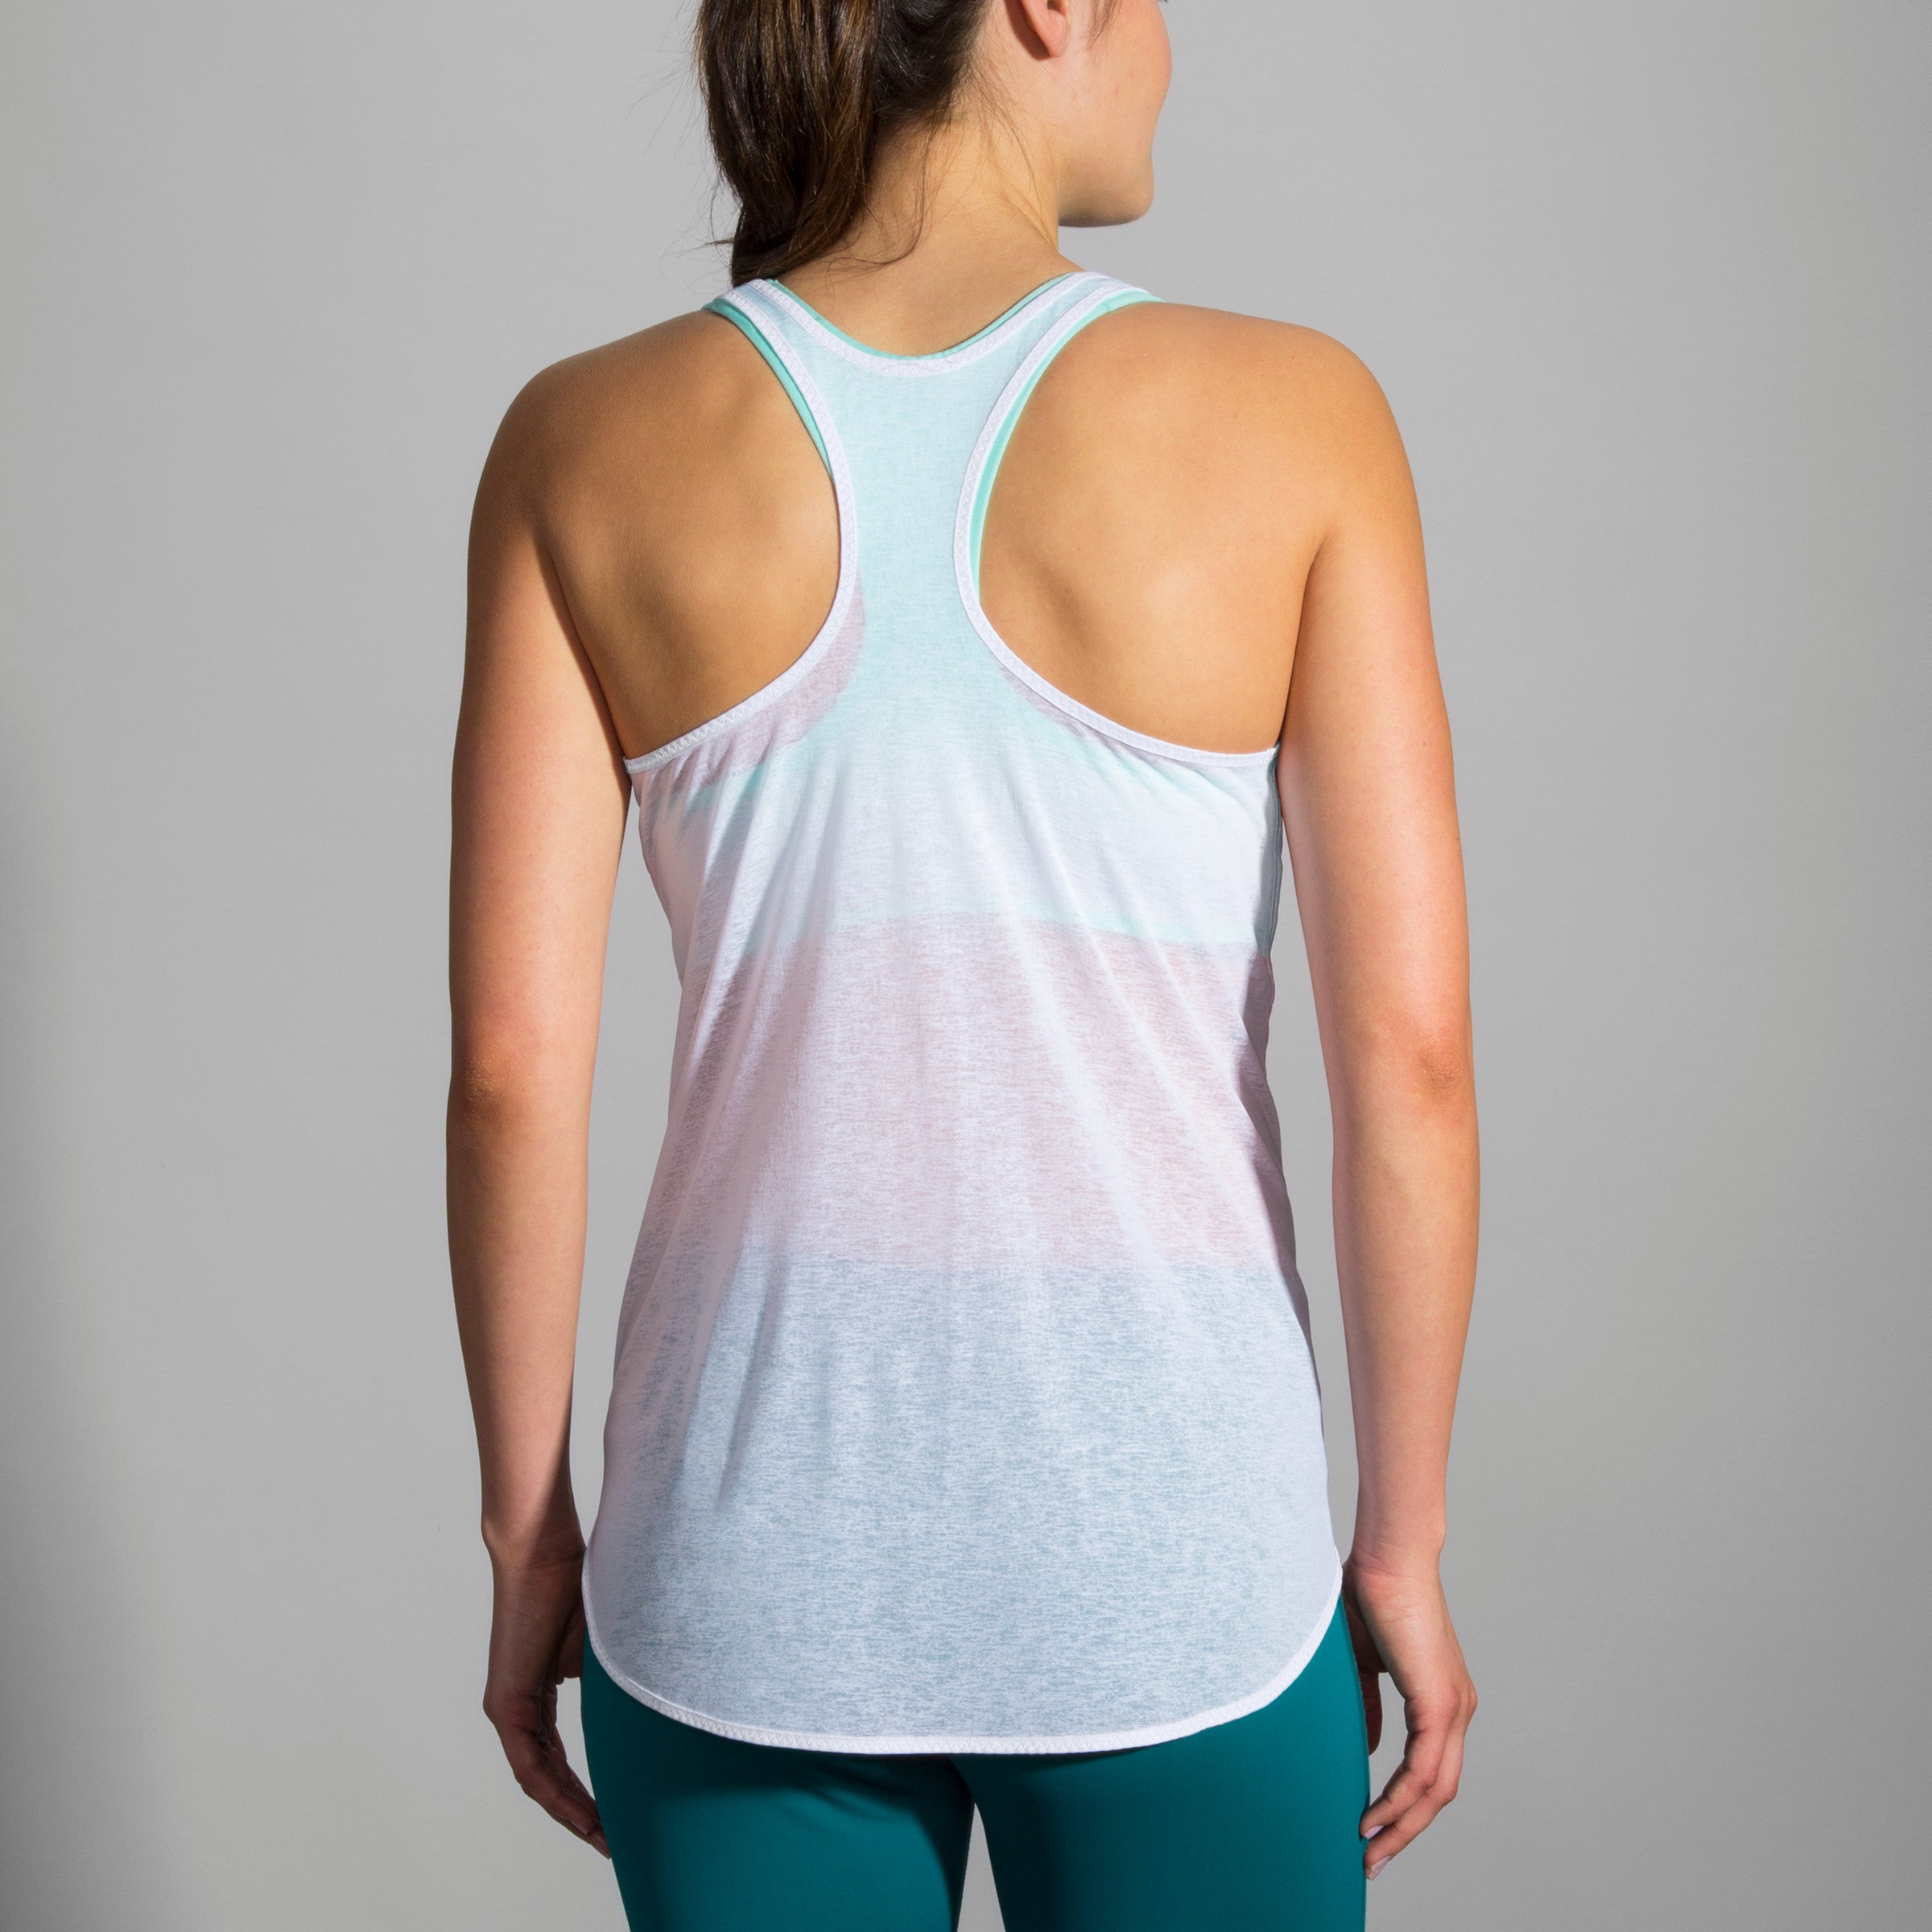 59c221af96fe99 Women s Ghost Racerback Tank – Gazelle Sports